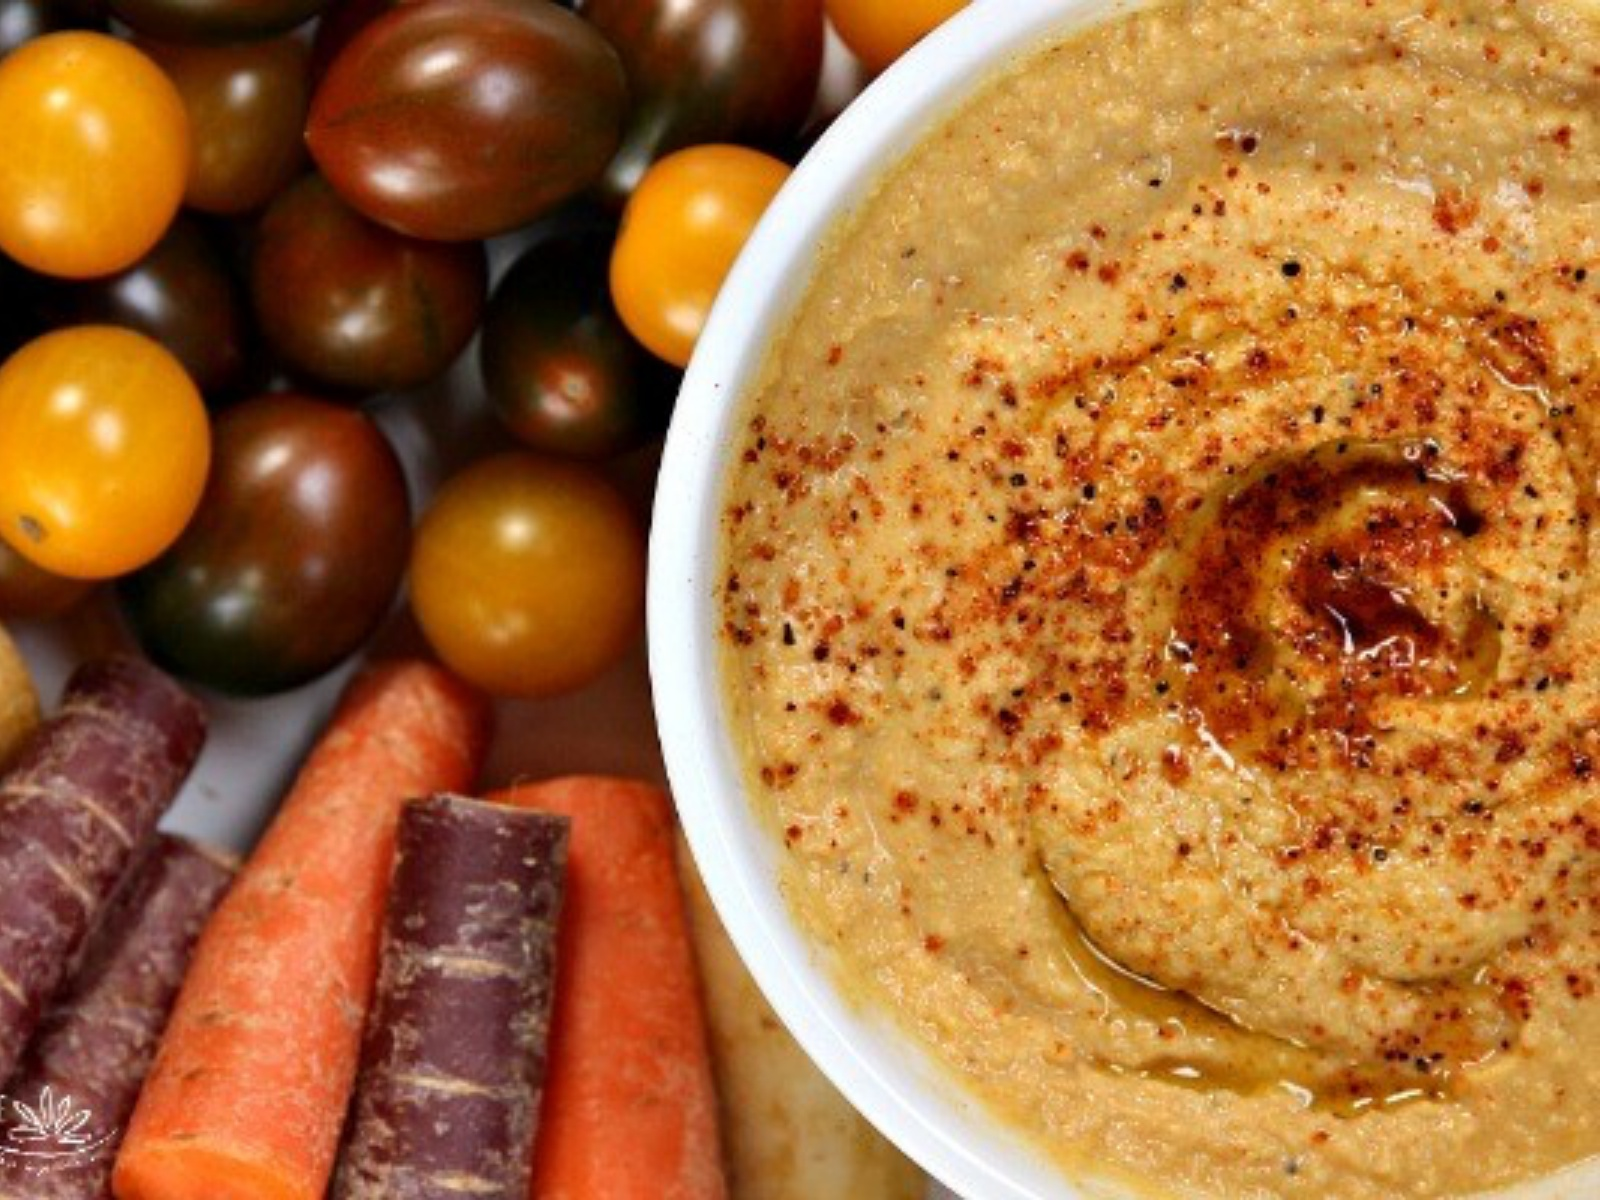 Chipotle and Pumpkin Spiced Hummus